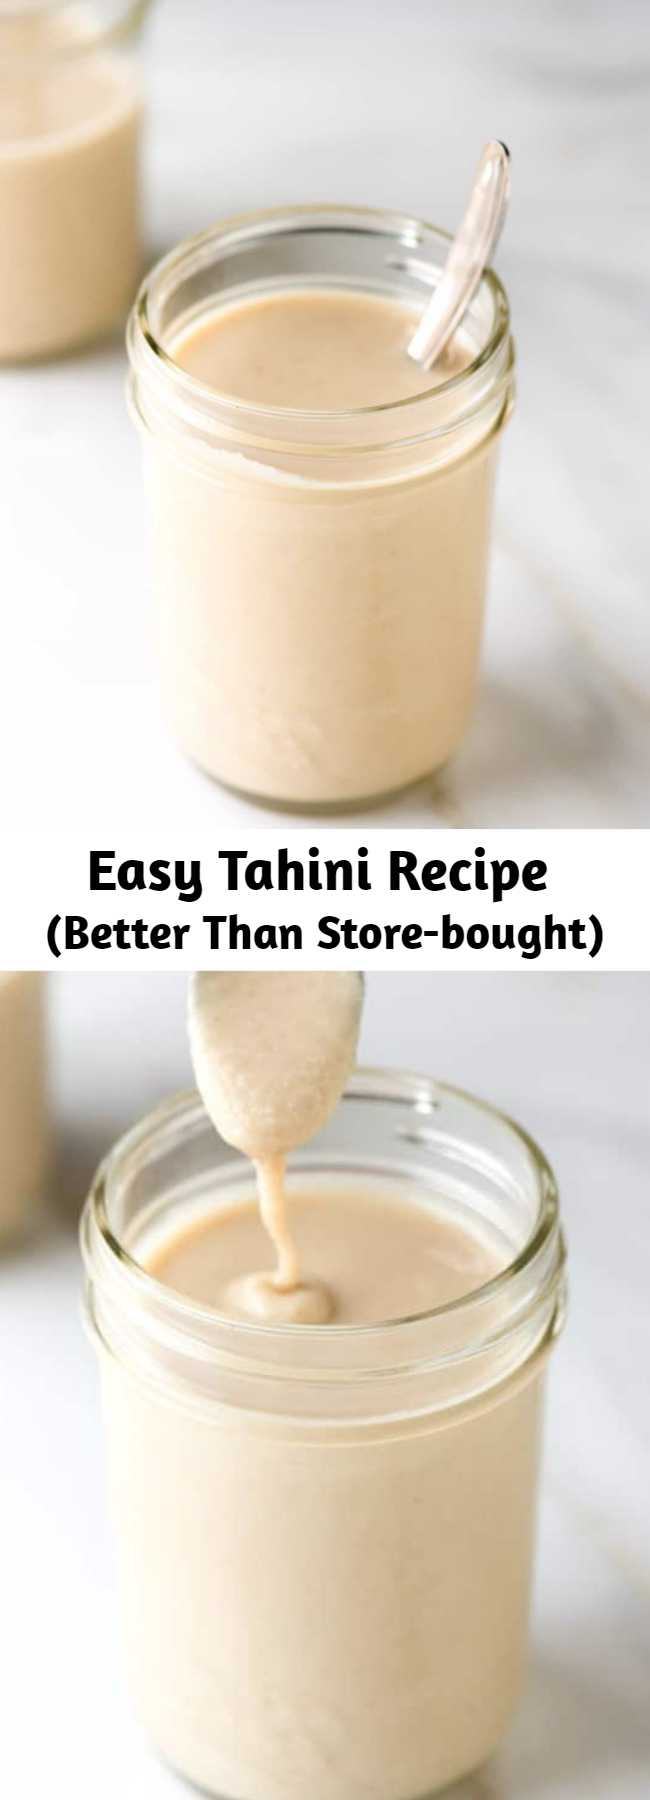 Easy Tahini Recipe (Better Than Store-bought) - Making tahini at home is easy and much less expensive than buying from the store. While tahini can be made from unhulled, sprouted and hulled sesame seeds, we prefer to use hulled sesame seeds for tahini. Tahini can be kept in the refrigerator for a month.